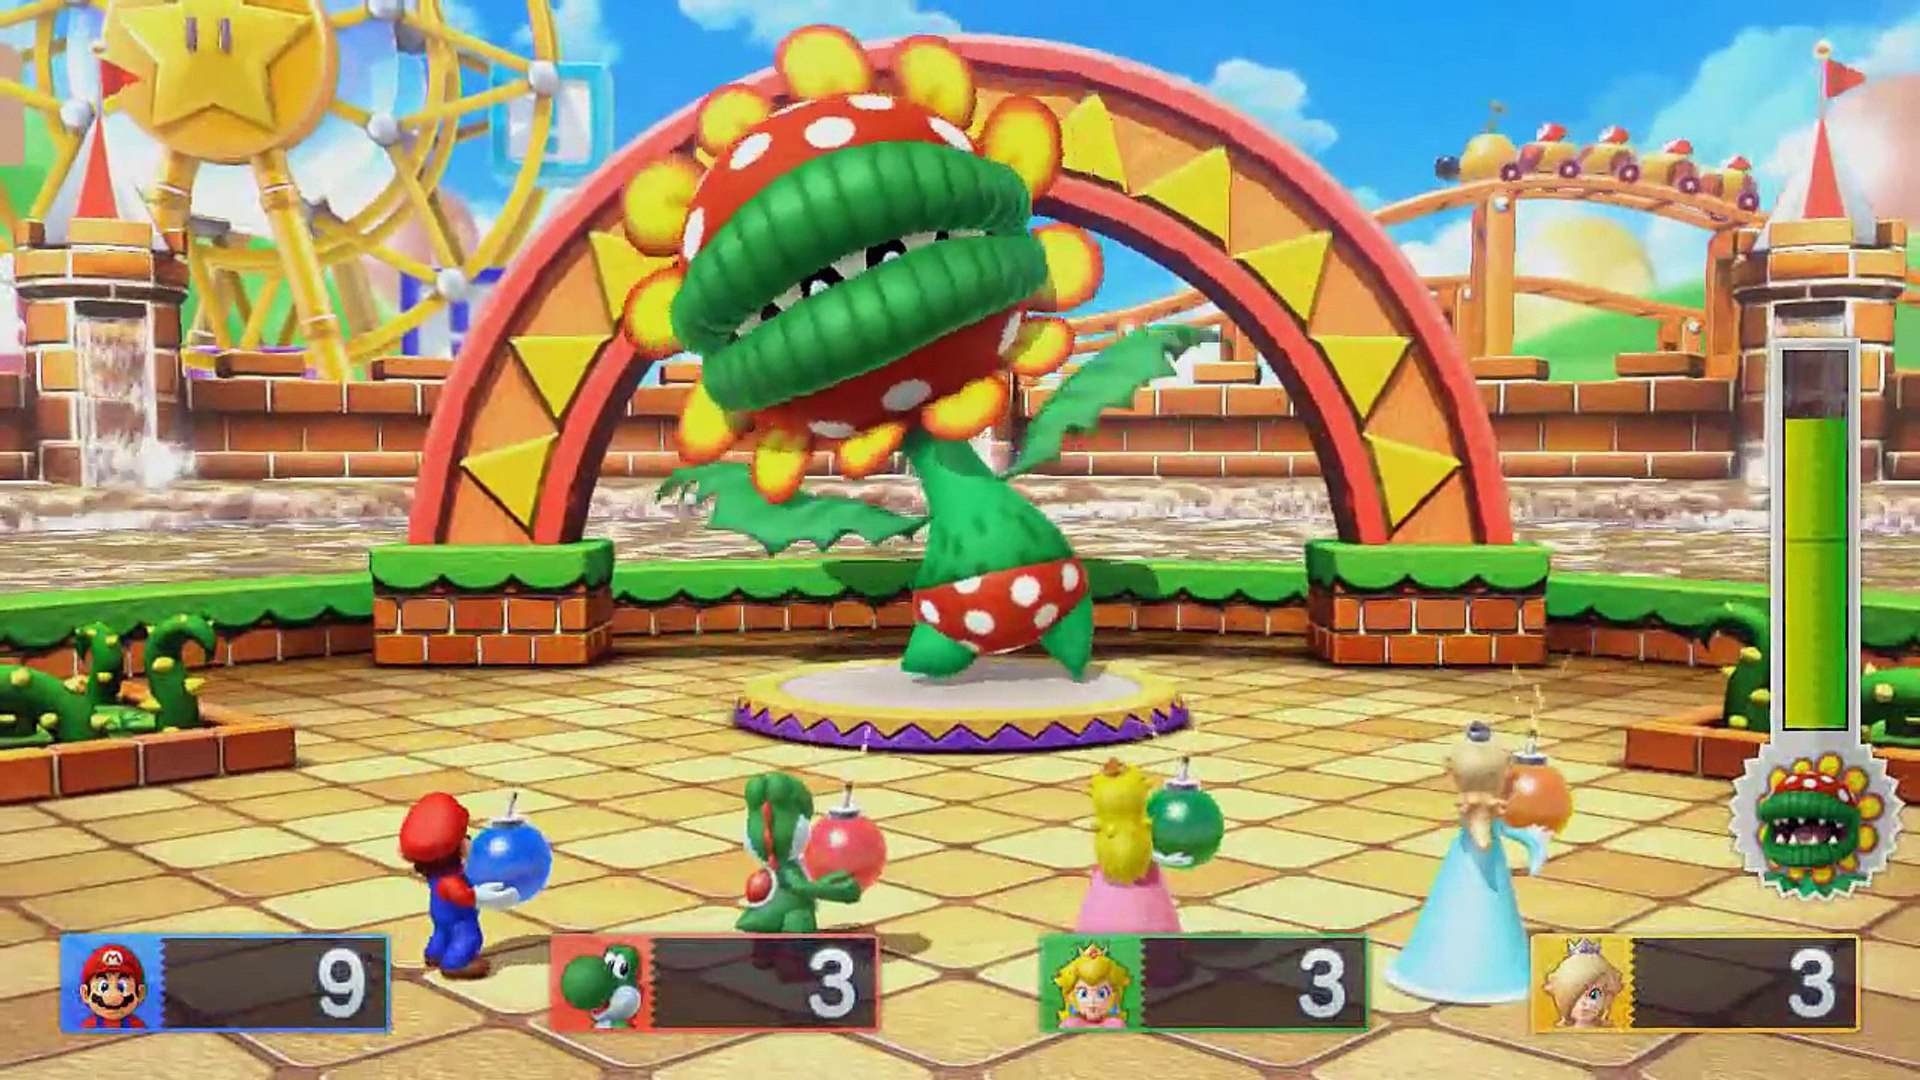 Mario Party 10 - All Boss Battle Minigames (All Bosses)